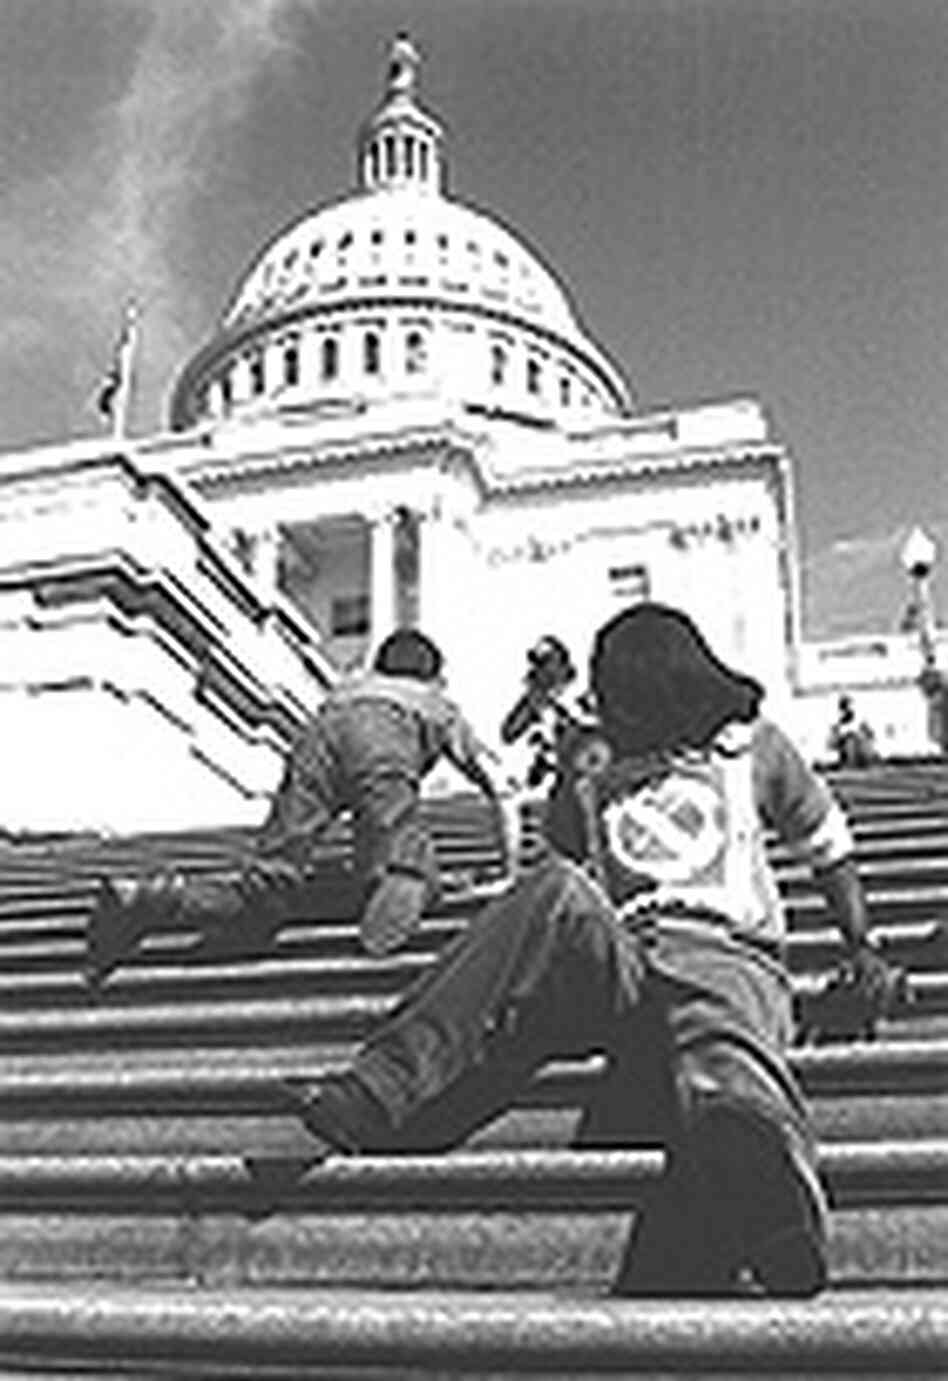 an introduction to the americans with disabilities act Americans with disabilities act  self-evaluation and transition plan  61 introduction  this americans with disabilities act.